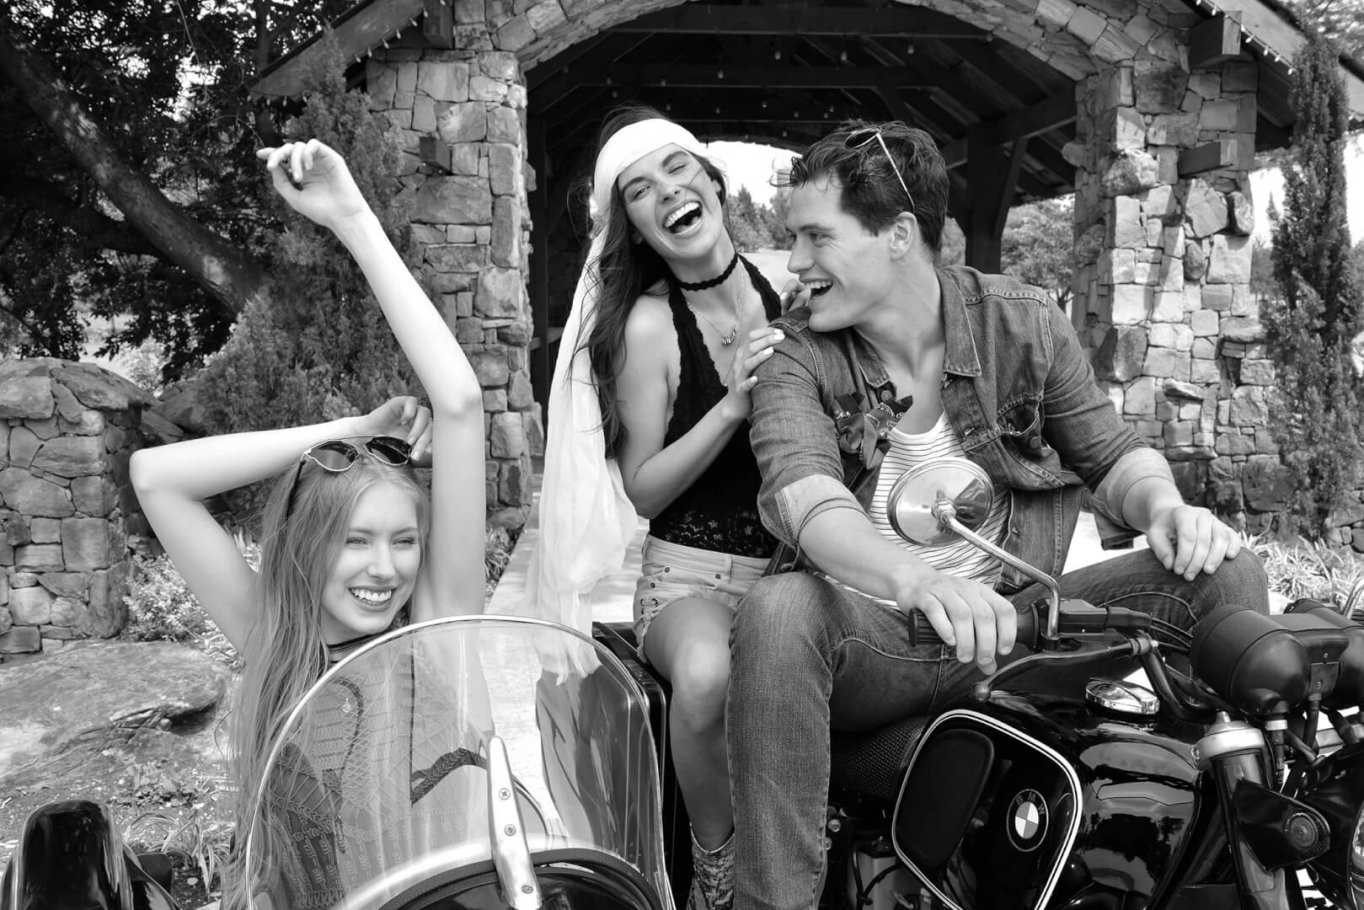 beautiful young people laughing with vintage motorcycle in black and white